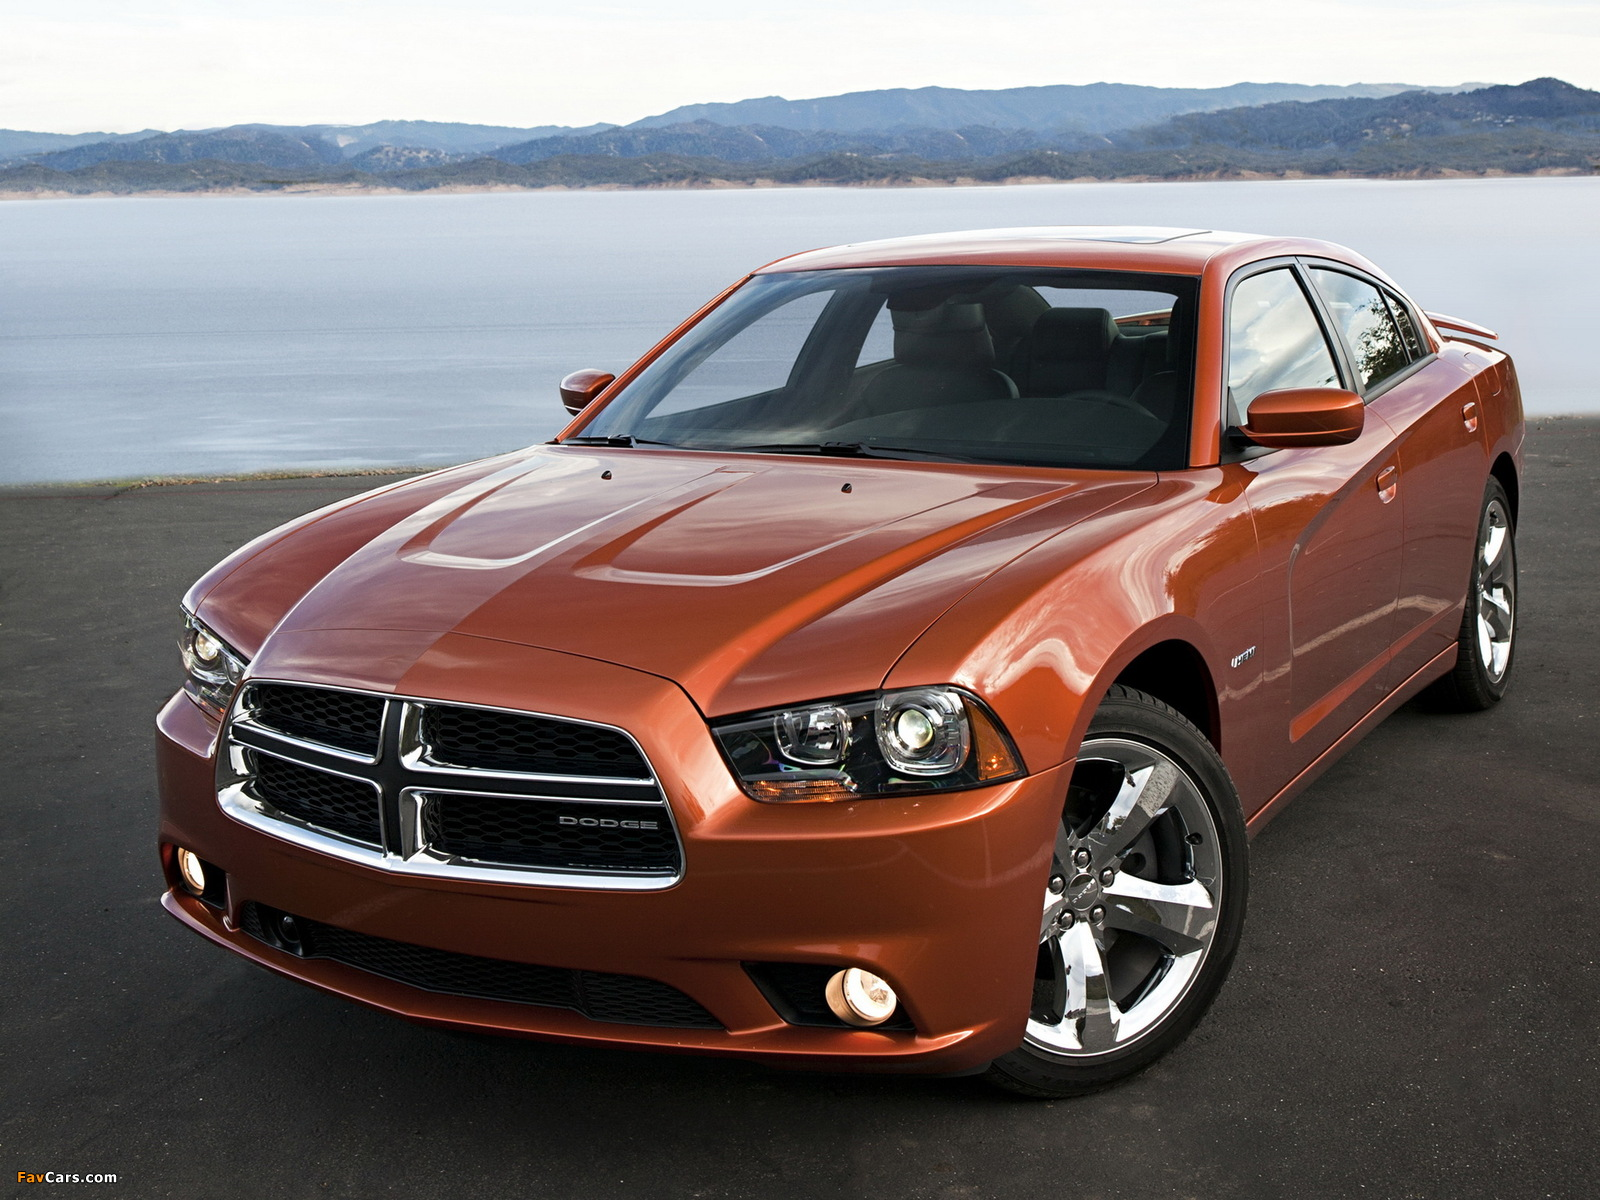 Dodge Charger R/T 2011 images (1600 x 1200)